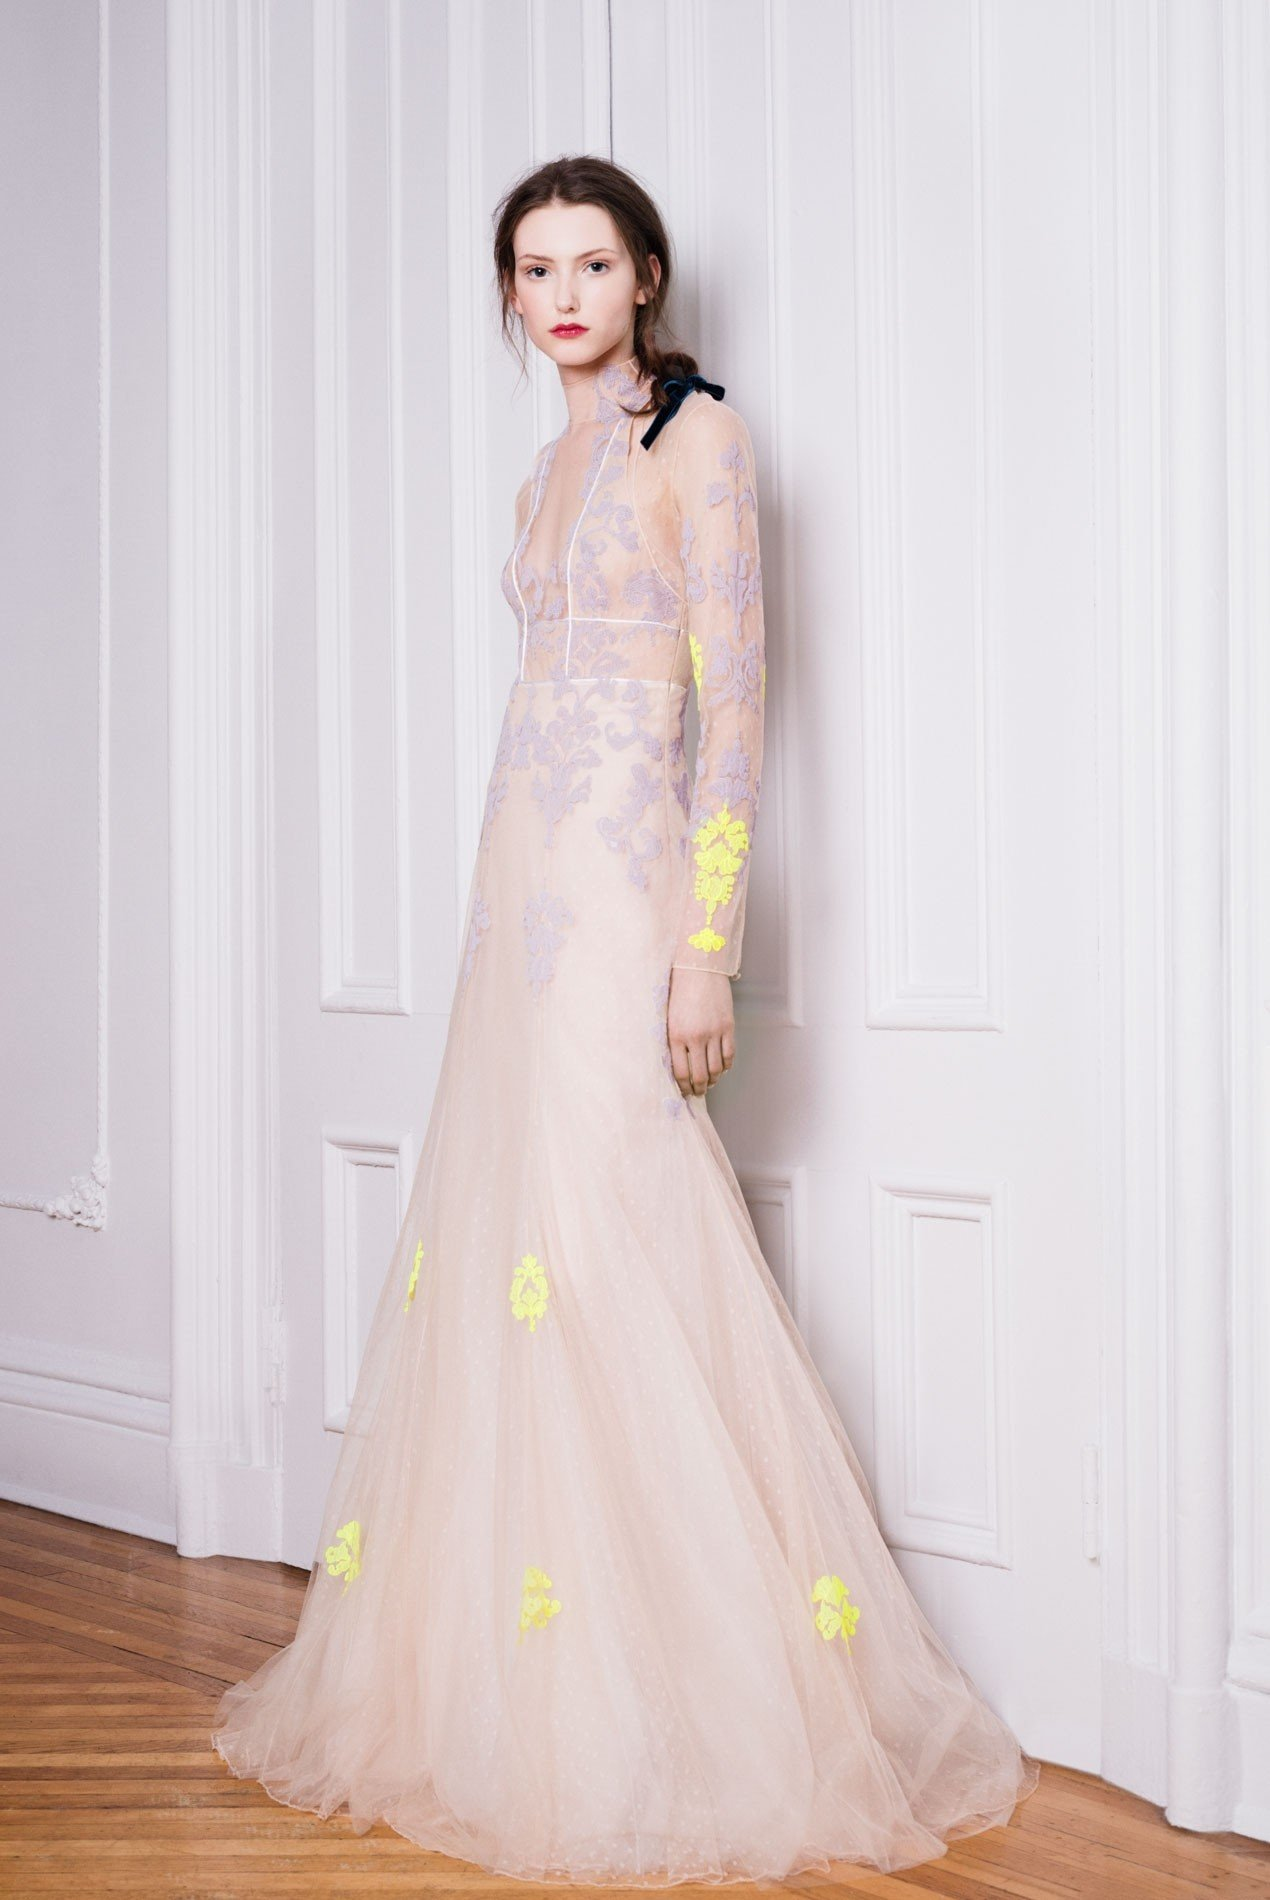 Point d'esprit gown and shrug with hand embroidered lace appliqué